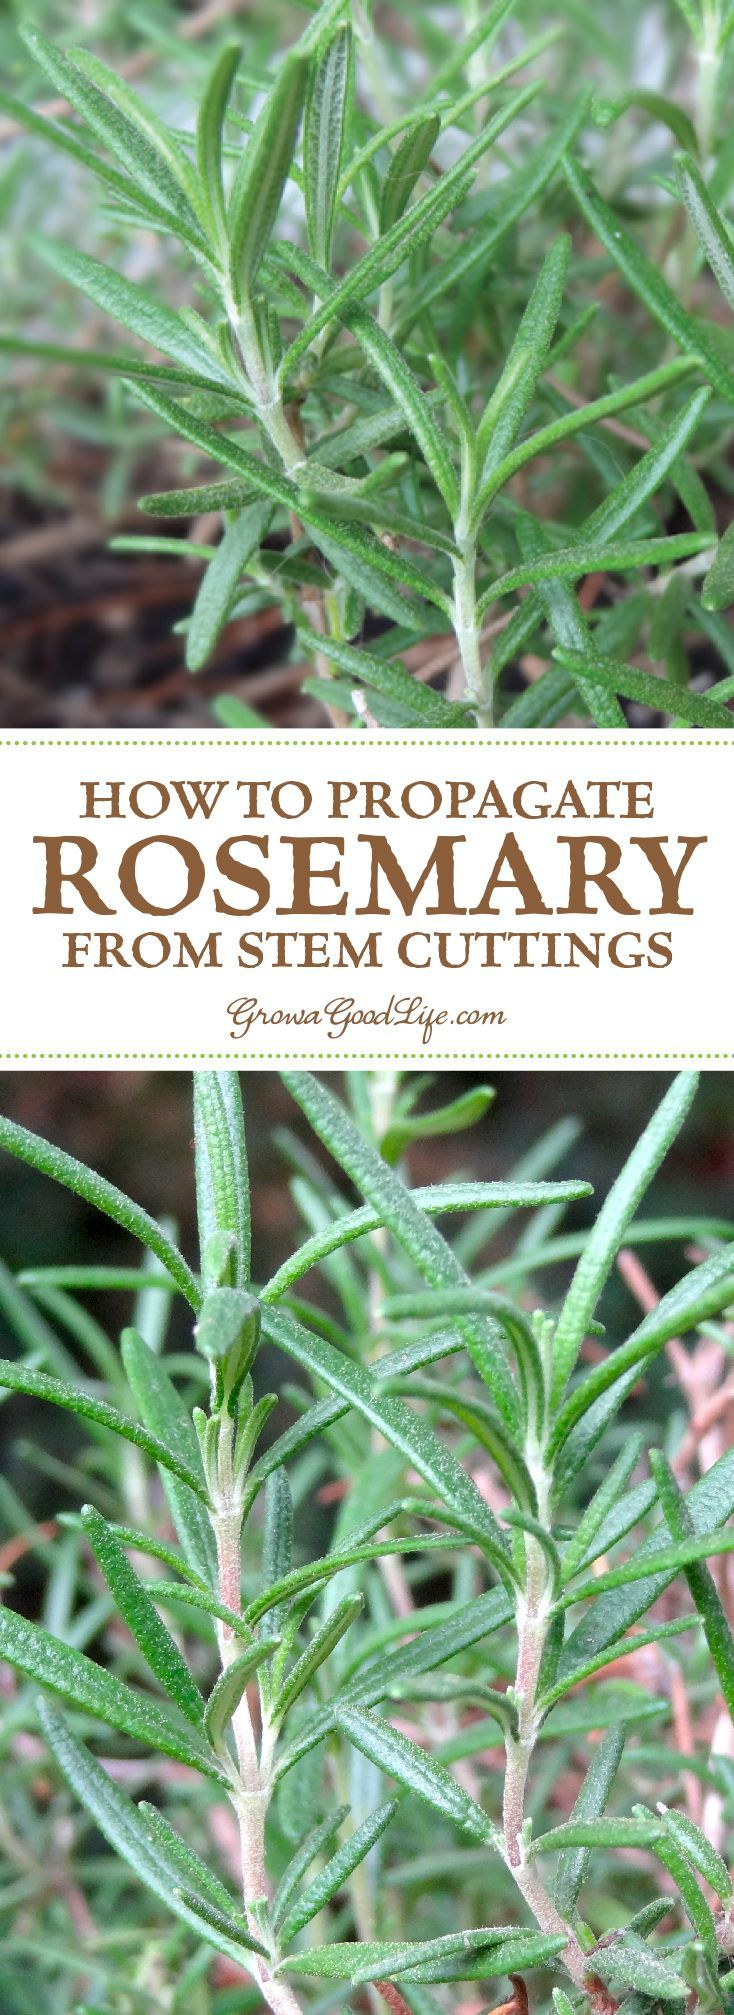 how to propagate a rosemary plant from stem cuttings